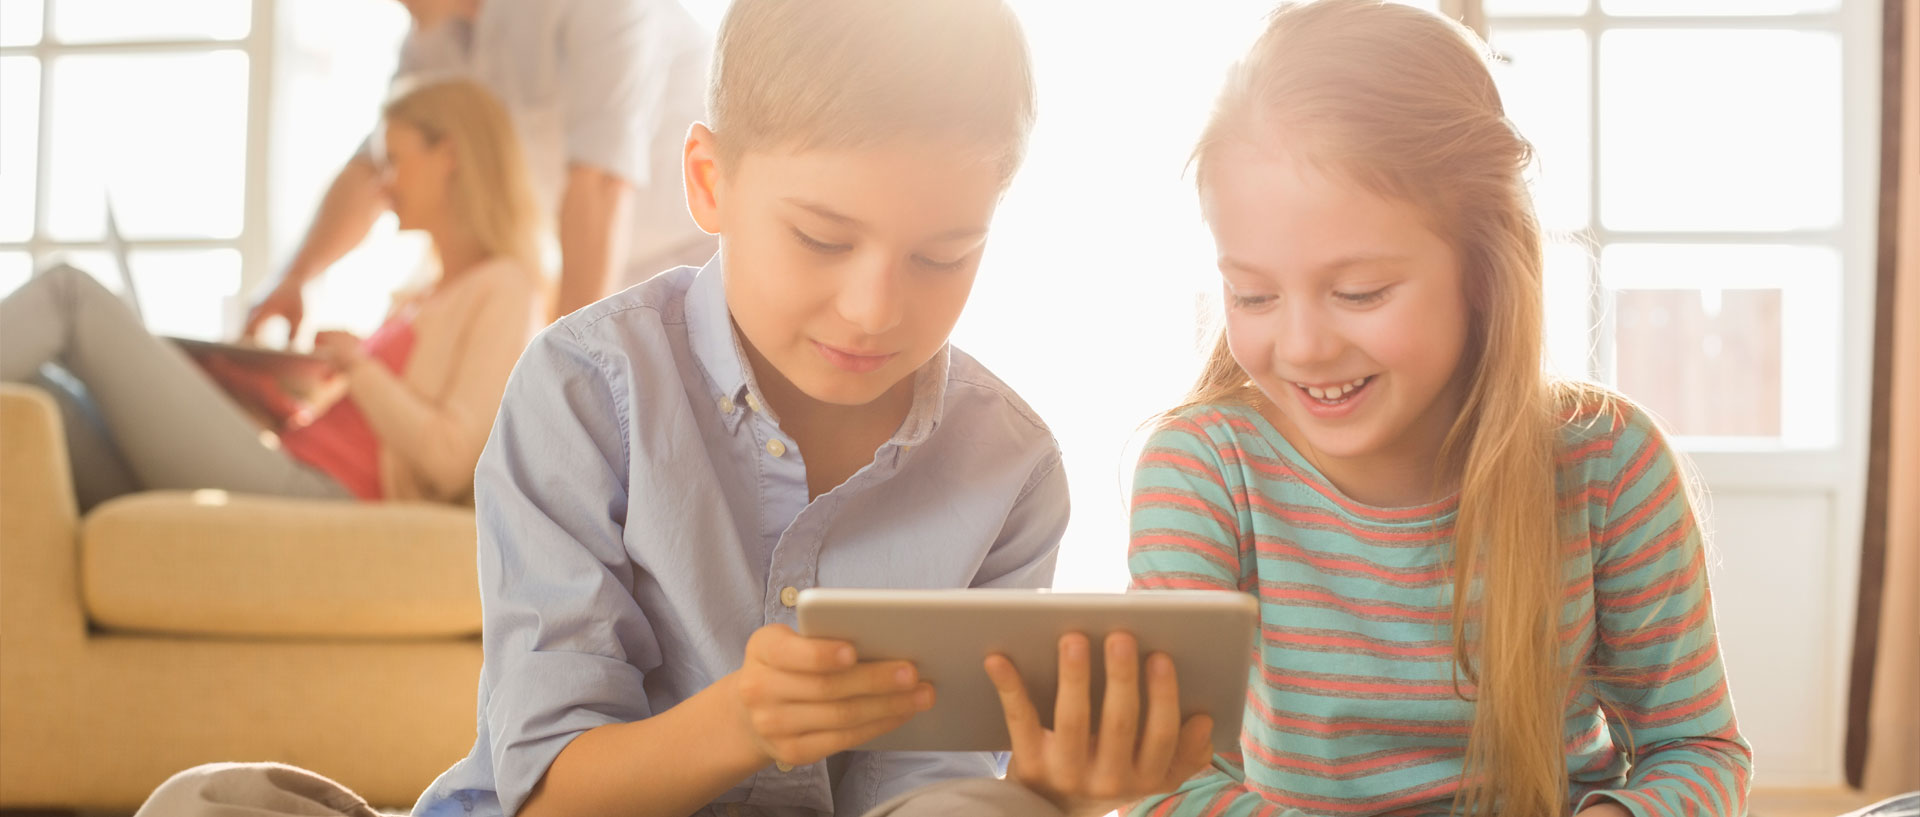 Best Tablets for Kids for the Holidays